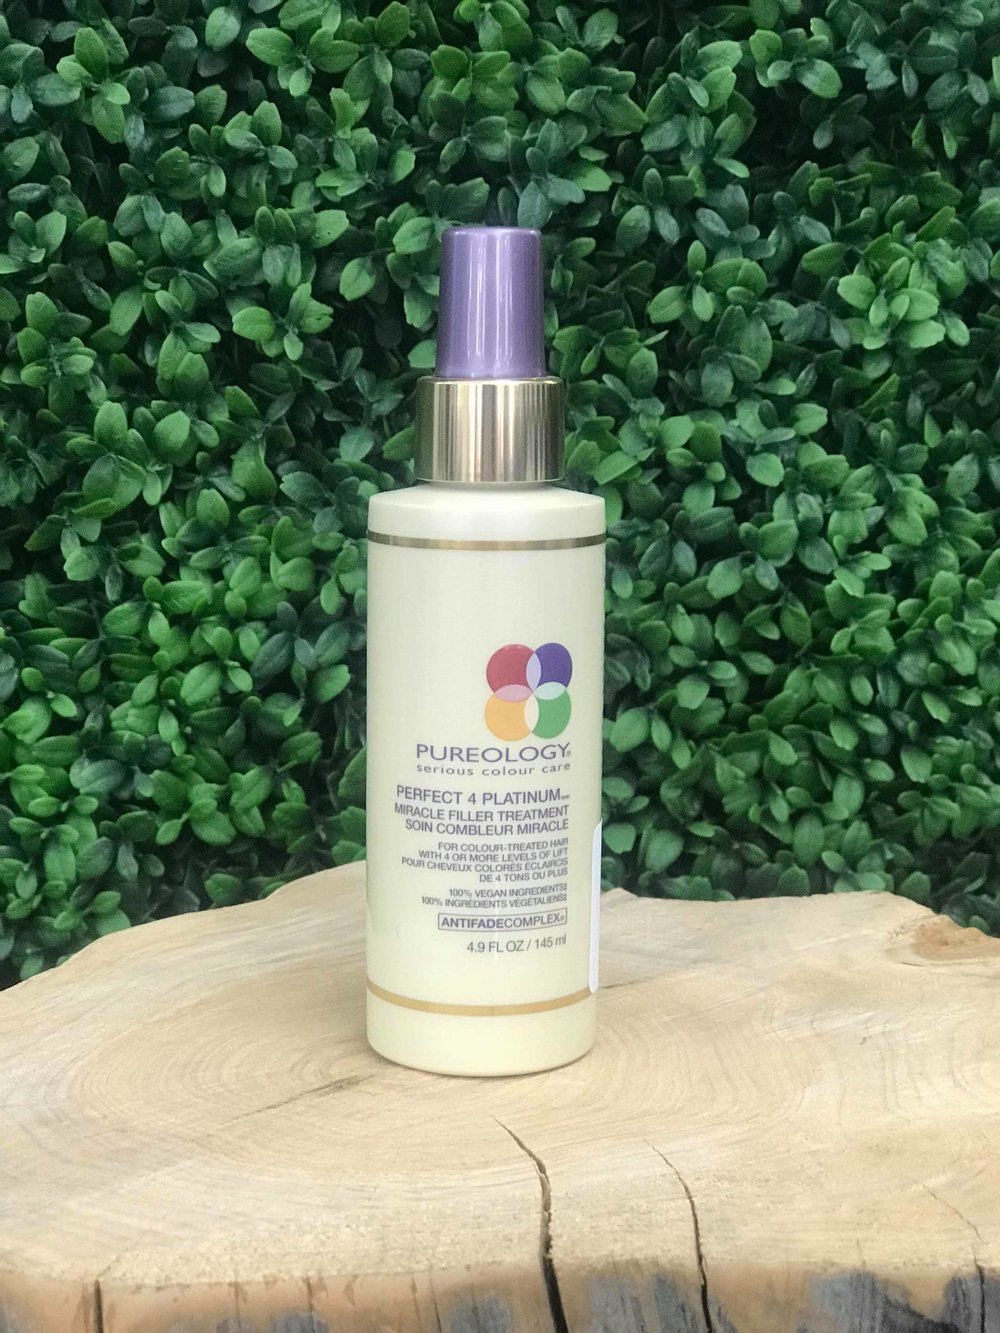 Perfect 4 Platinum Miracle Filler Treatment 145ml - $44.00